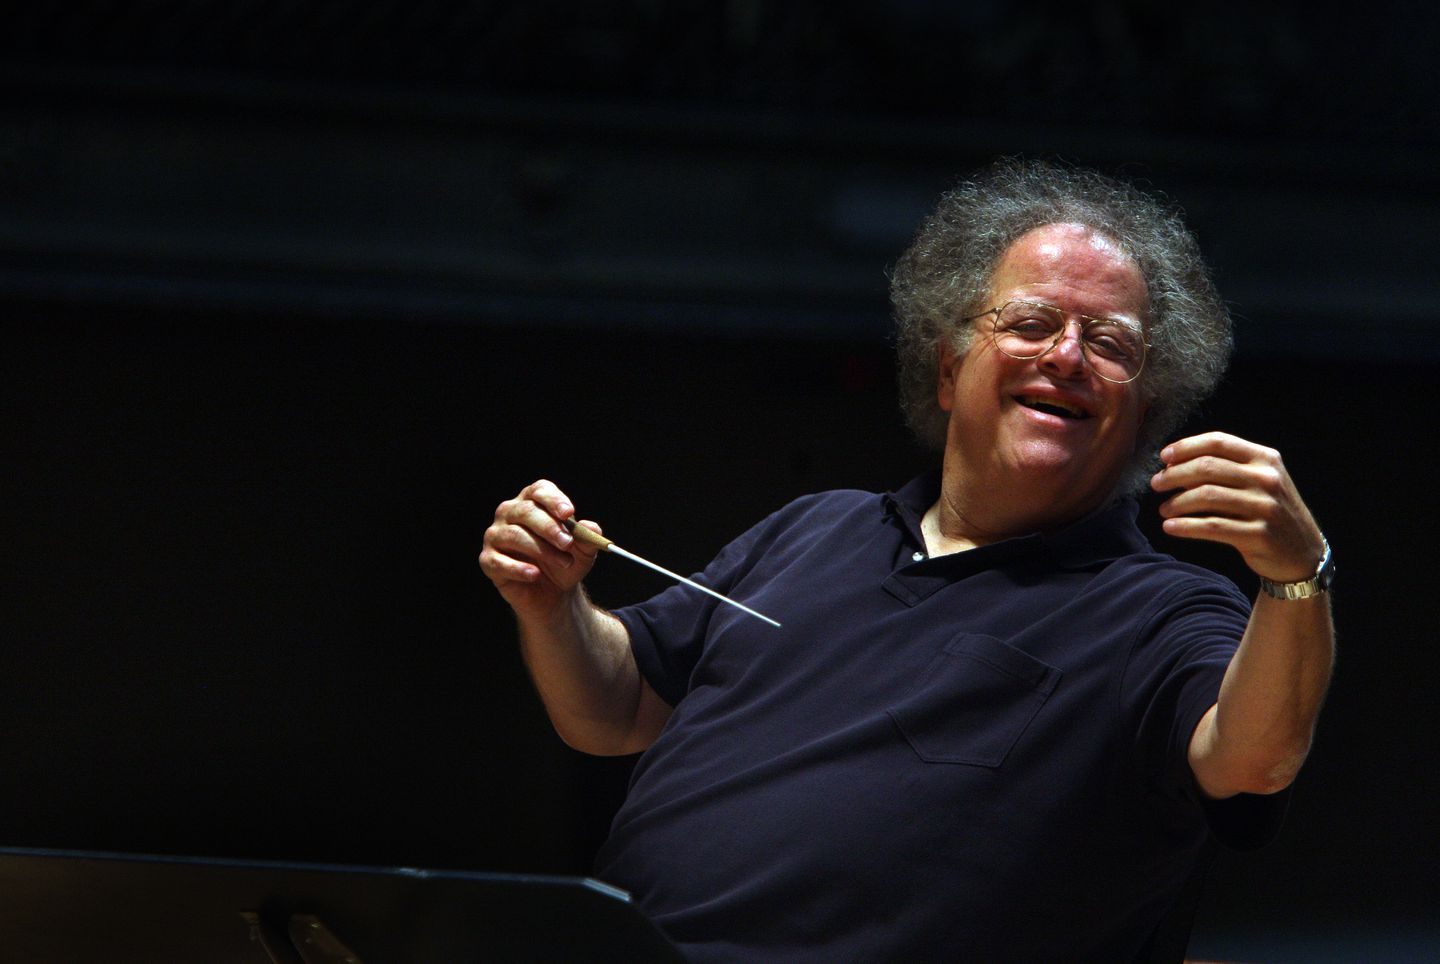 BSO music director James Levine rehearsed Mozart's Symphony 18 with the Boston Symphony Orchestra in 2009.